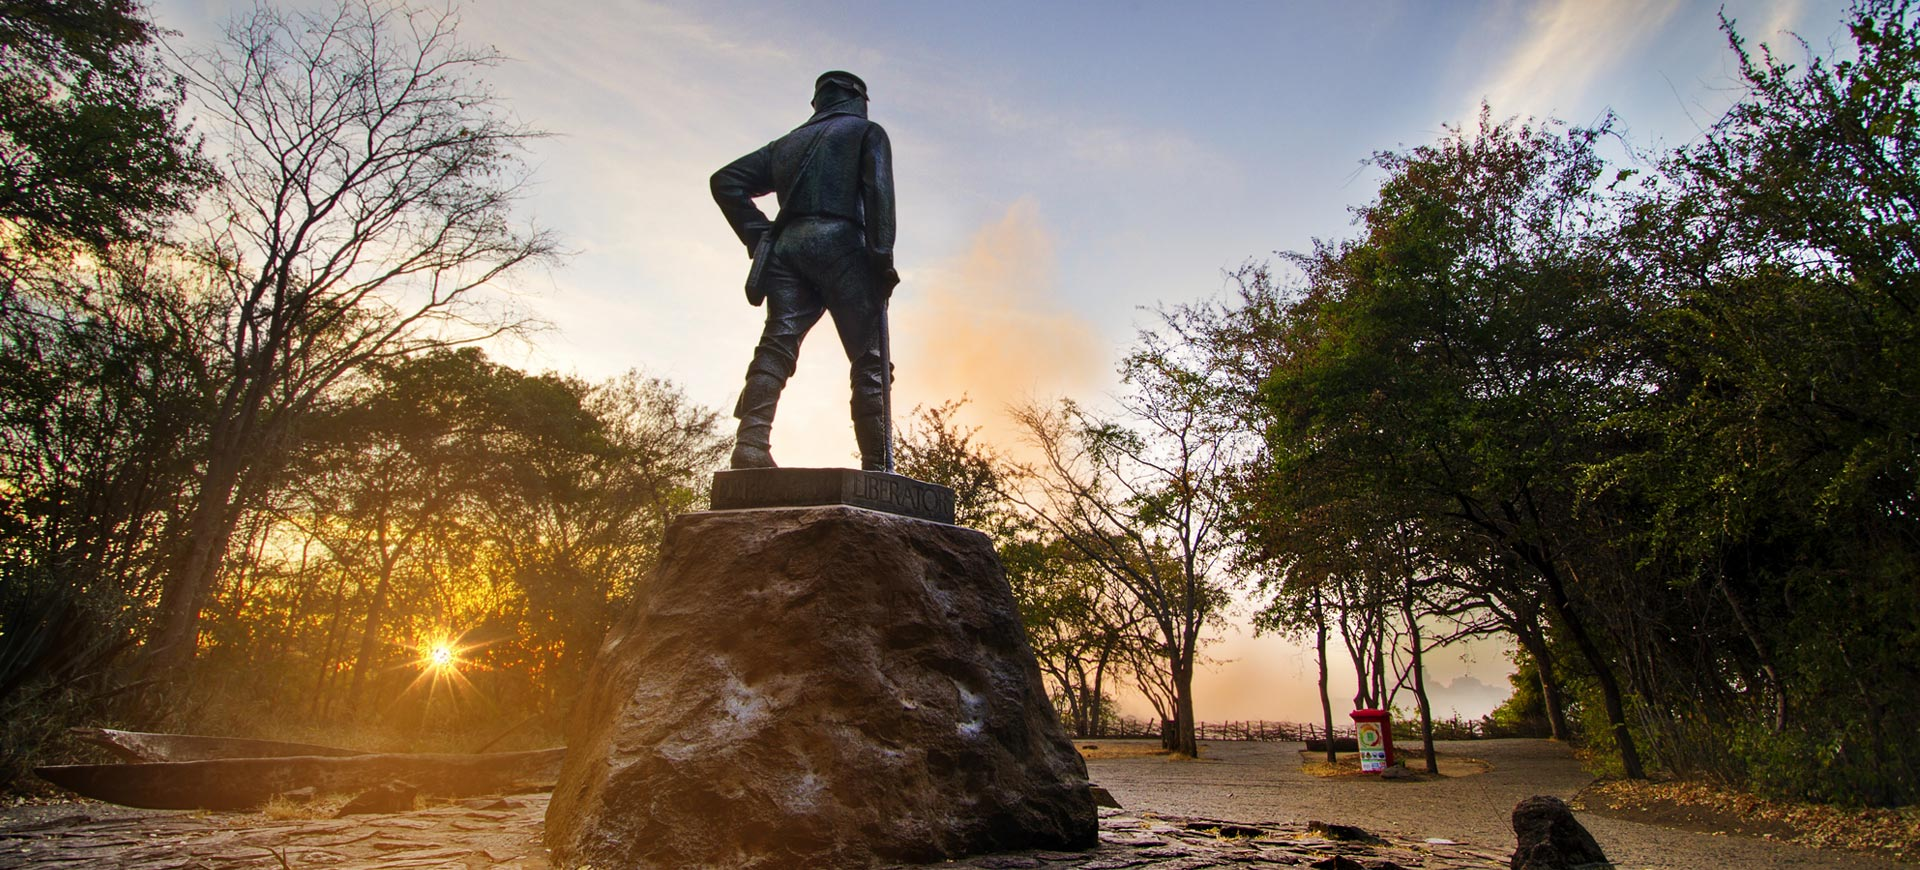 Guided Tour Livingstone Statue